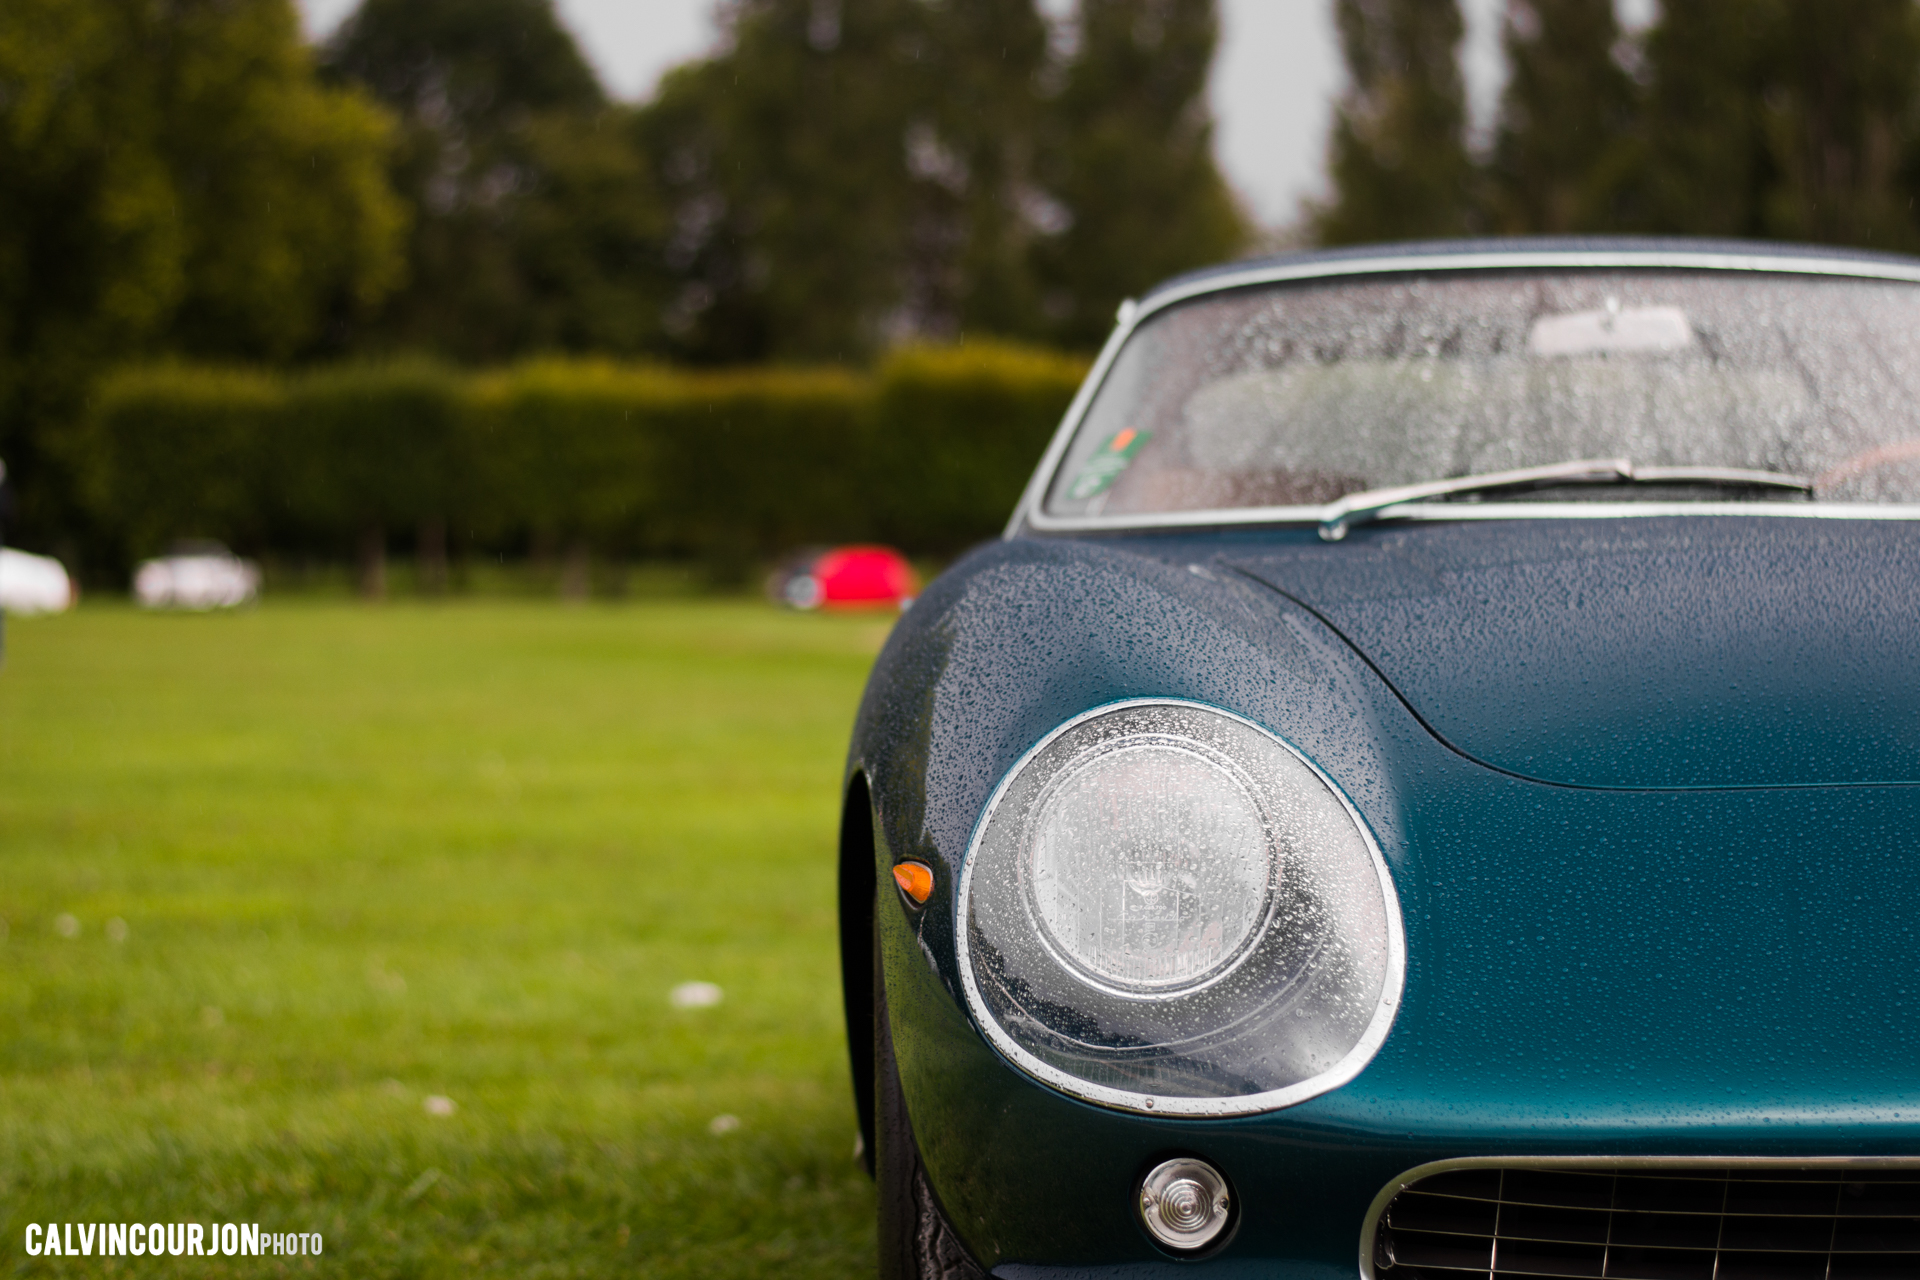 Le regard de Ferrari - Chantilly 2015 – photo Calvin Courjon